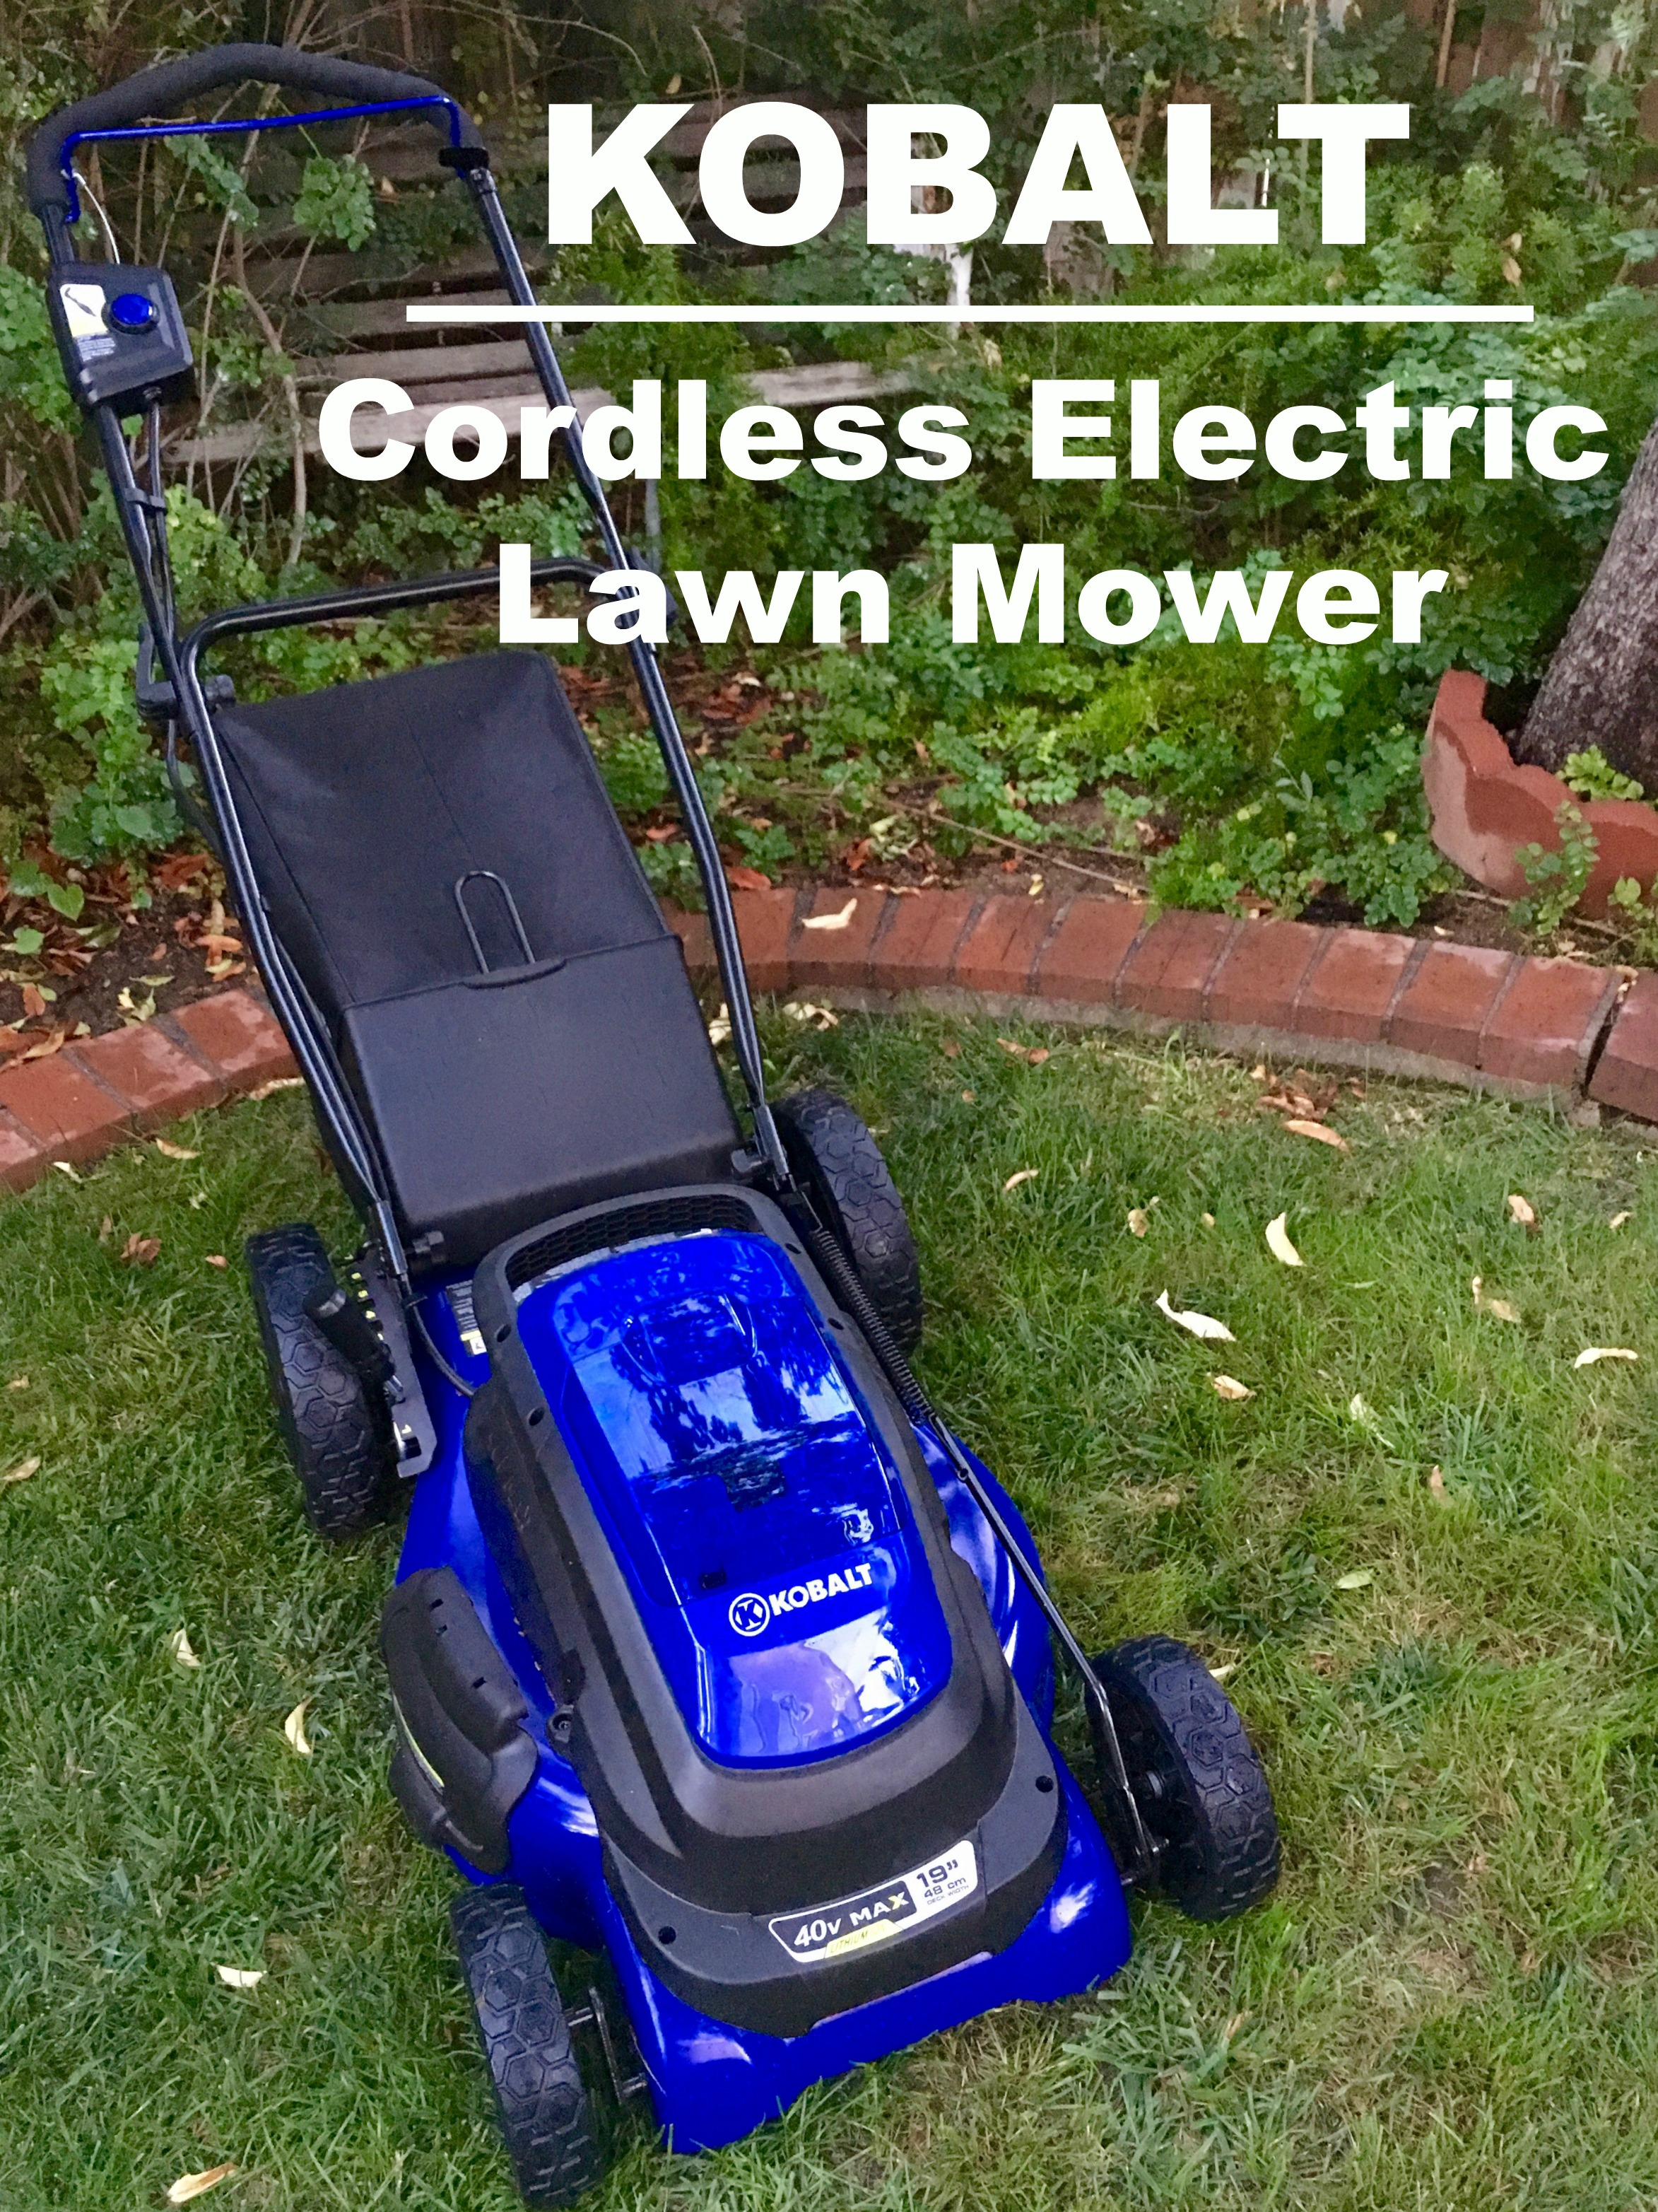 Kobalt Cordless Electric Lawn Mower - Simple Sojourns